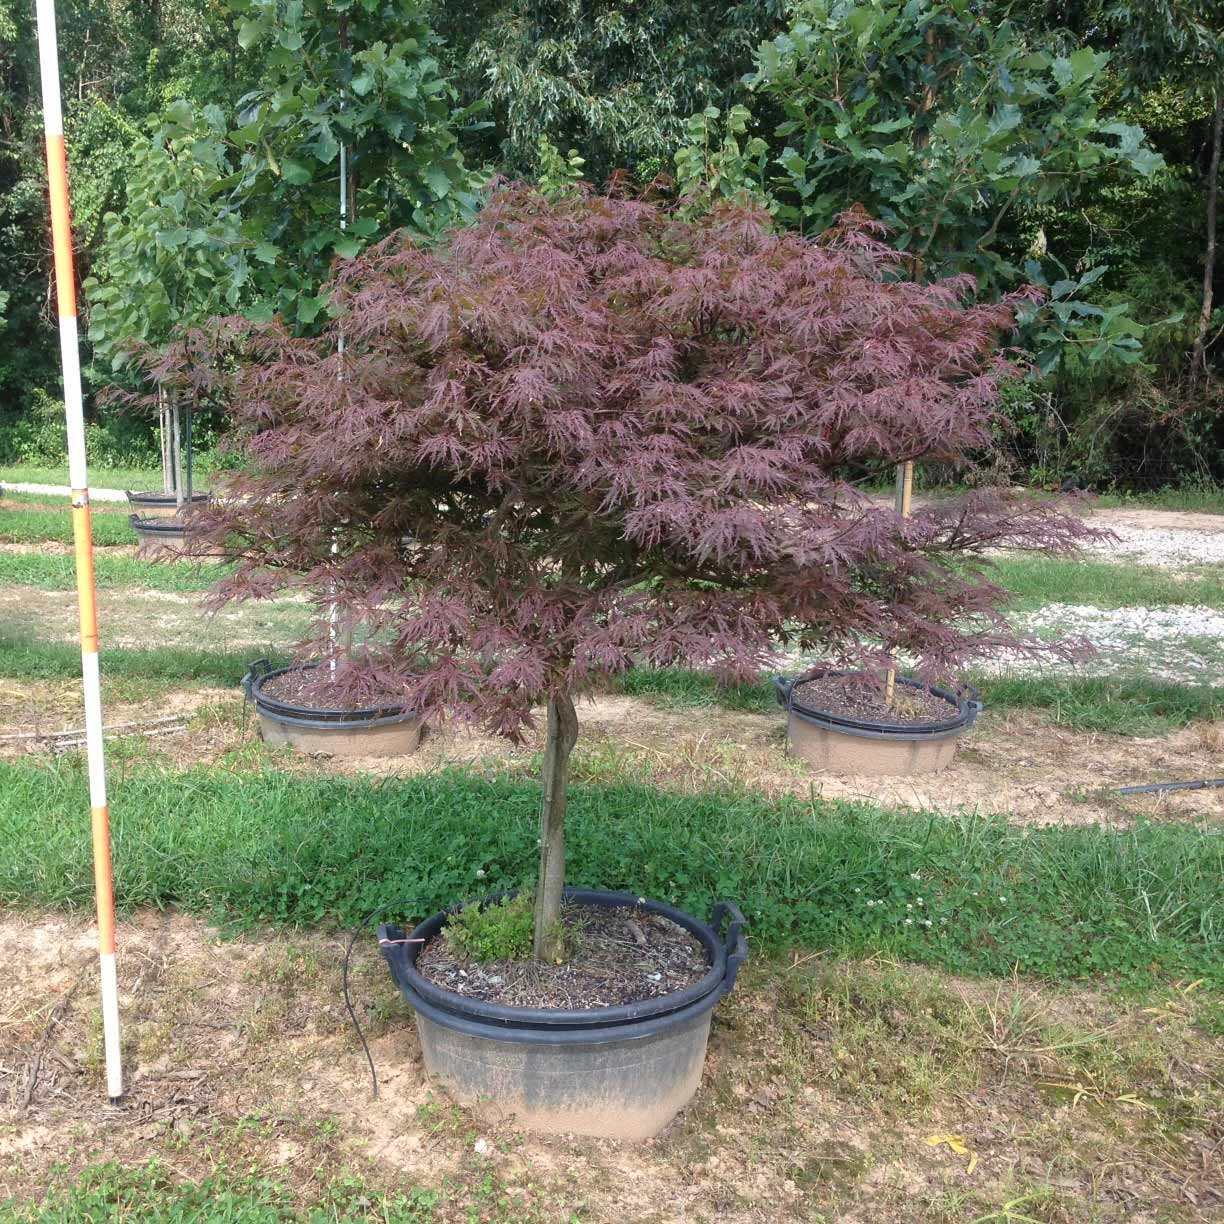 Acer Palmatum Dissectum 'Red Dragon' (Red Dragon Japanese Maple)